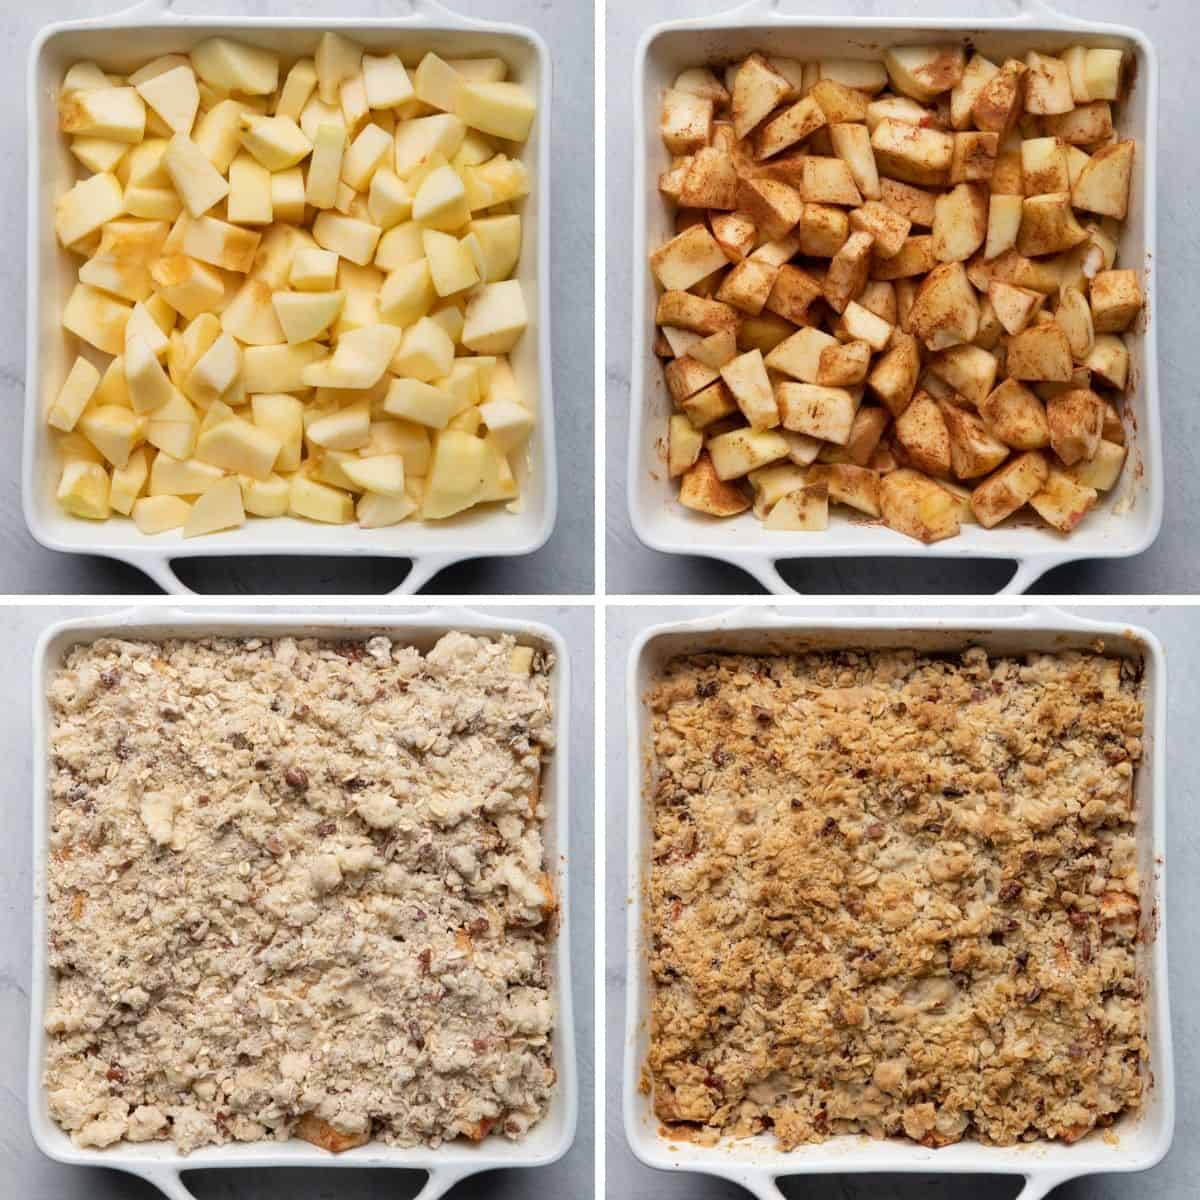 4 image collage of the apples in baking dish with steps for how to prepare them